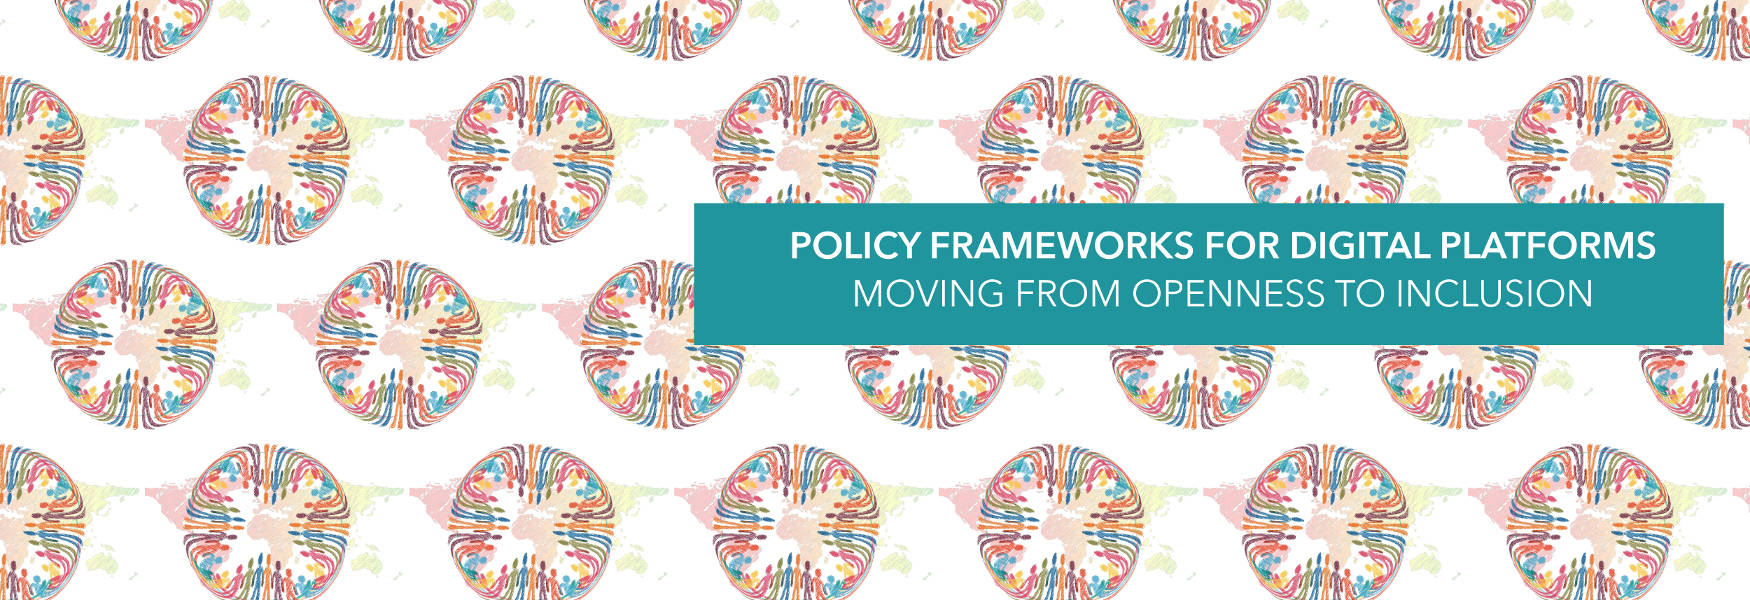 Policy frameworks for digital platforms - Moving from openness to inclusion